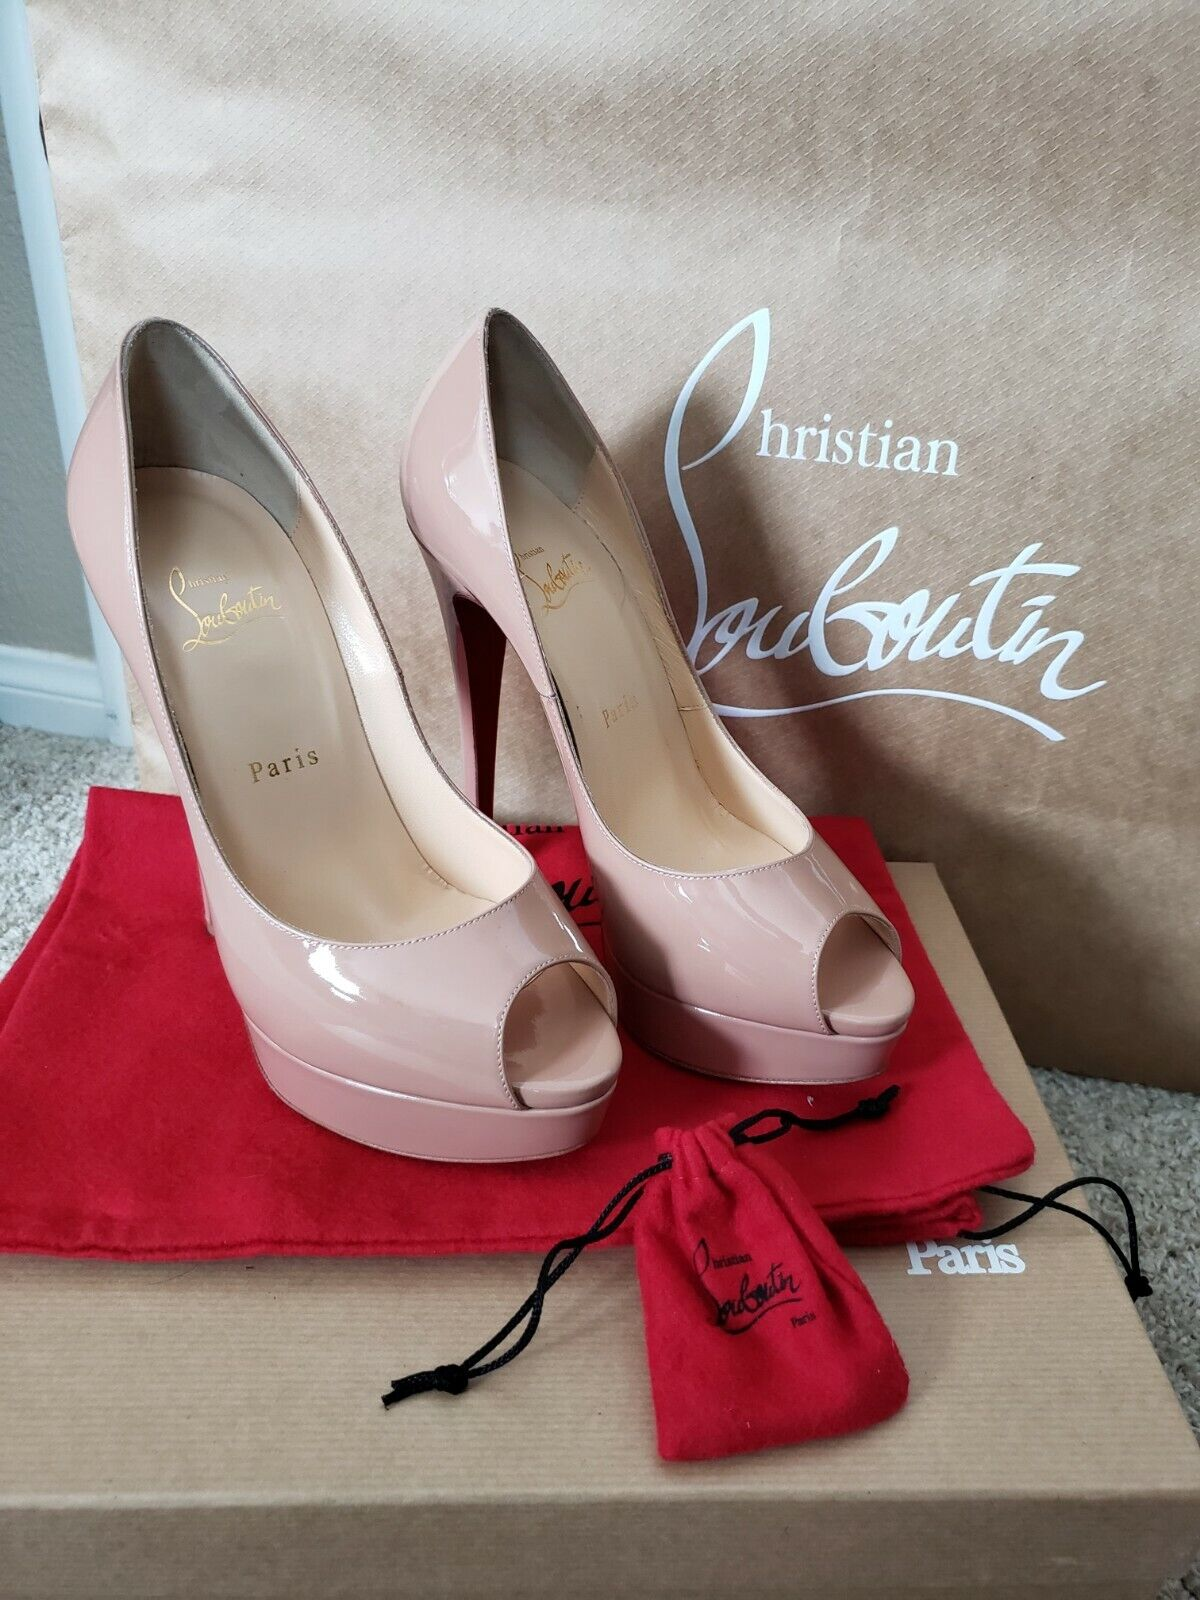 NEW Christian Louboutin schuhe, Lady Peep Nude 150 Patent leather BOXED Größe 38.5